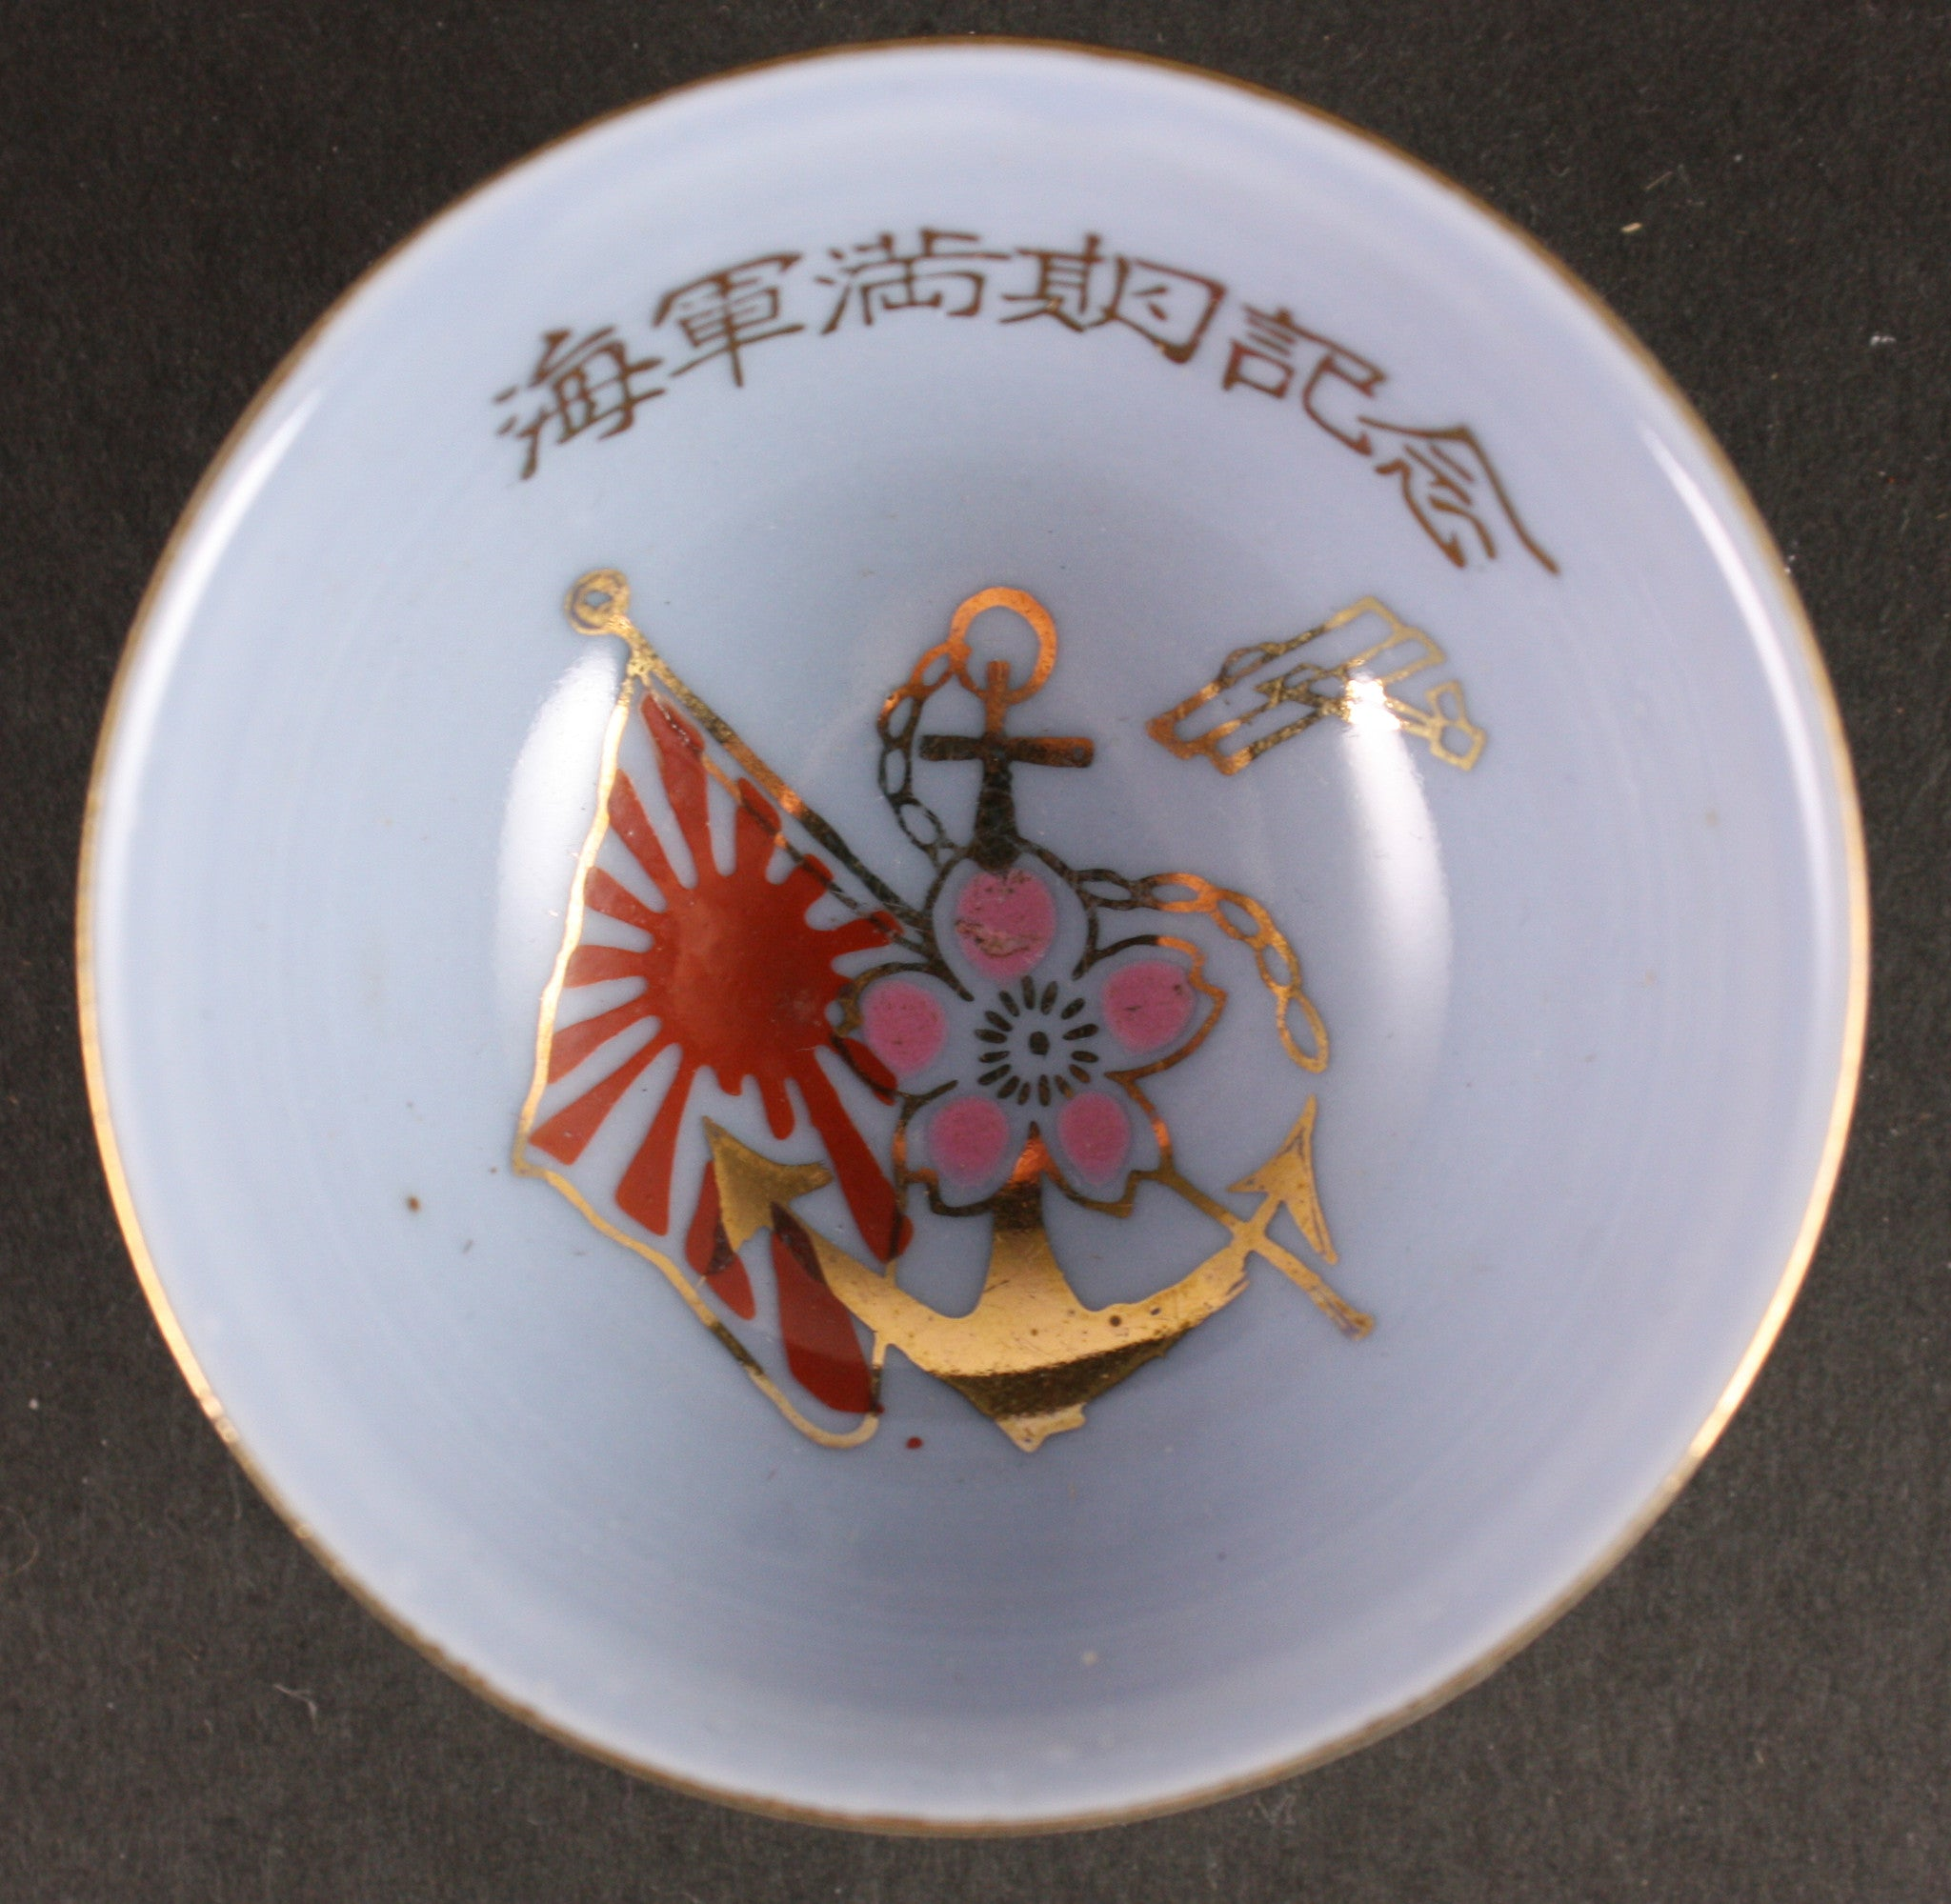 Rare Antique Japanese Military Naval Air Service Sake Cup